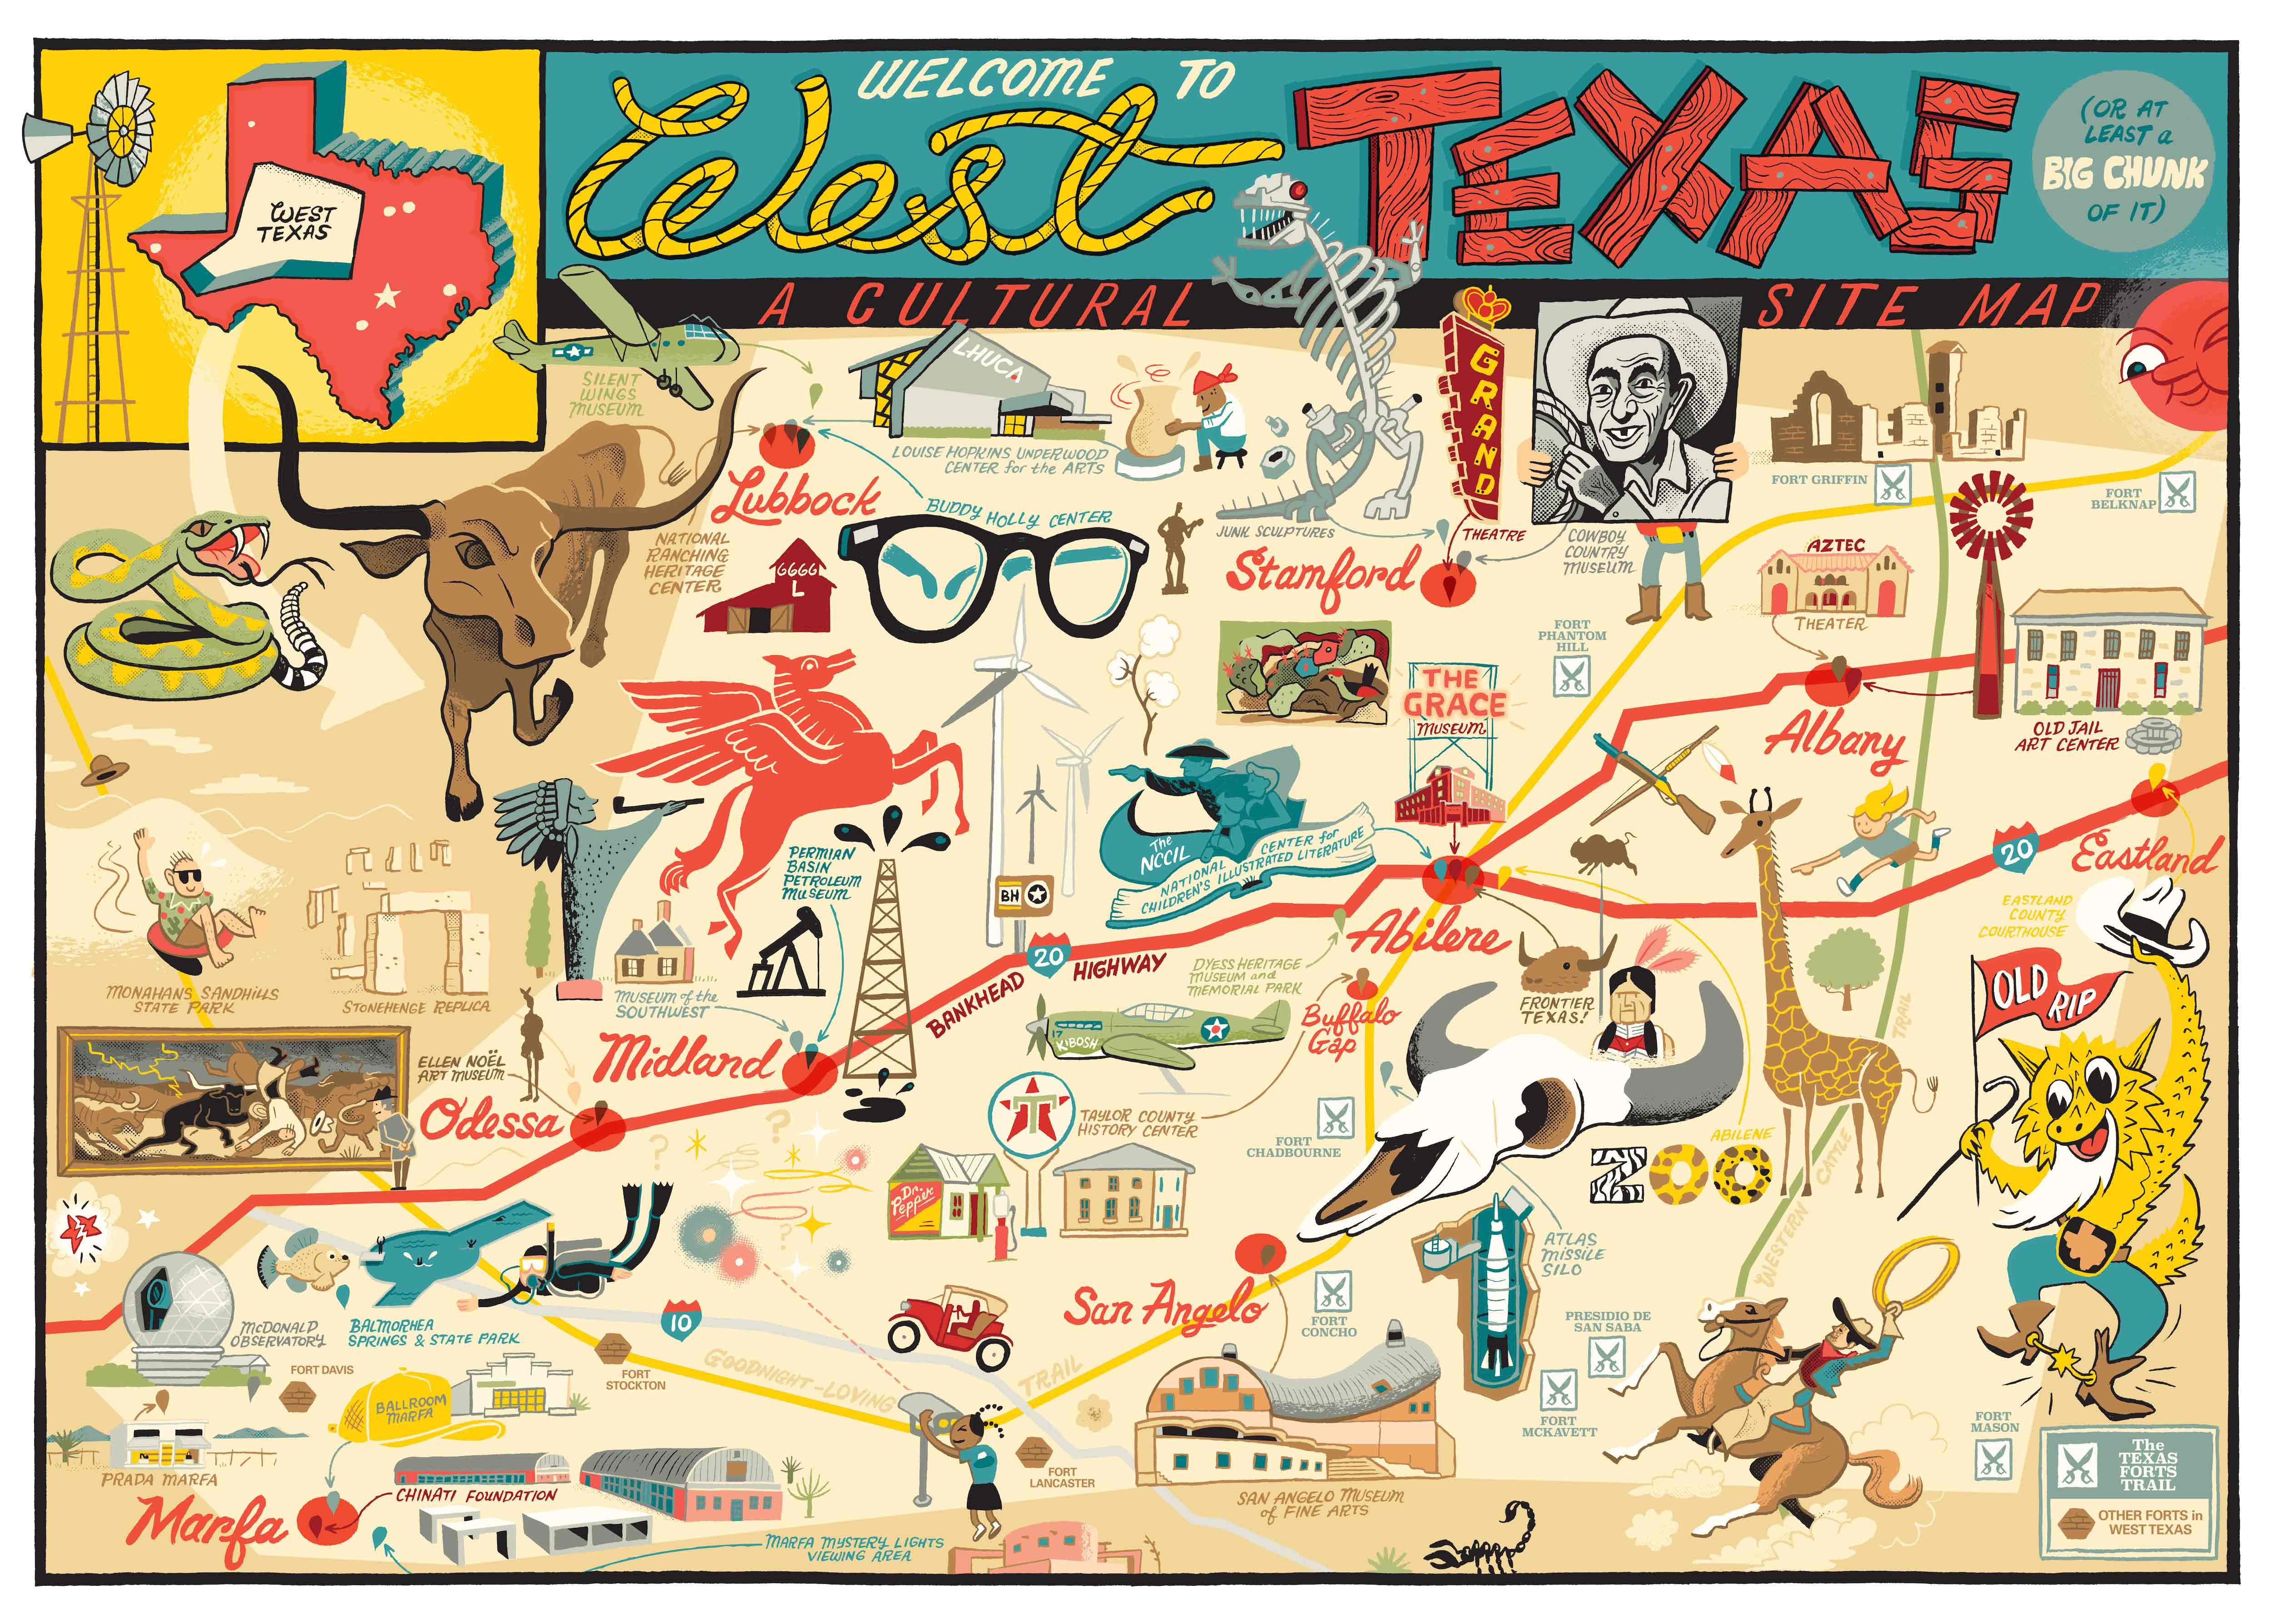 A New West Texas Travel Guide from the Old Jail Art Center   Glasstire